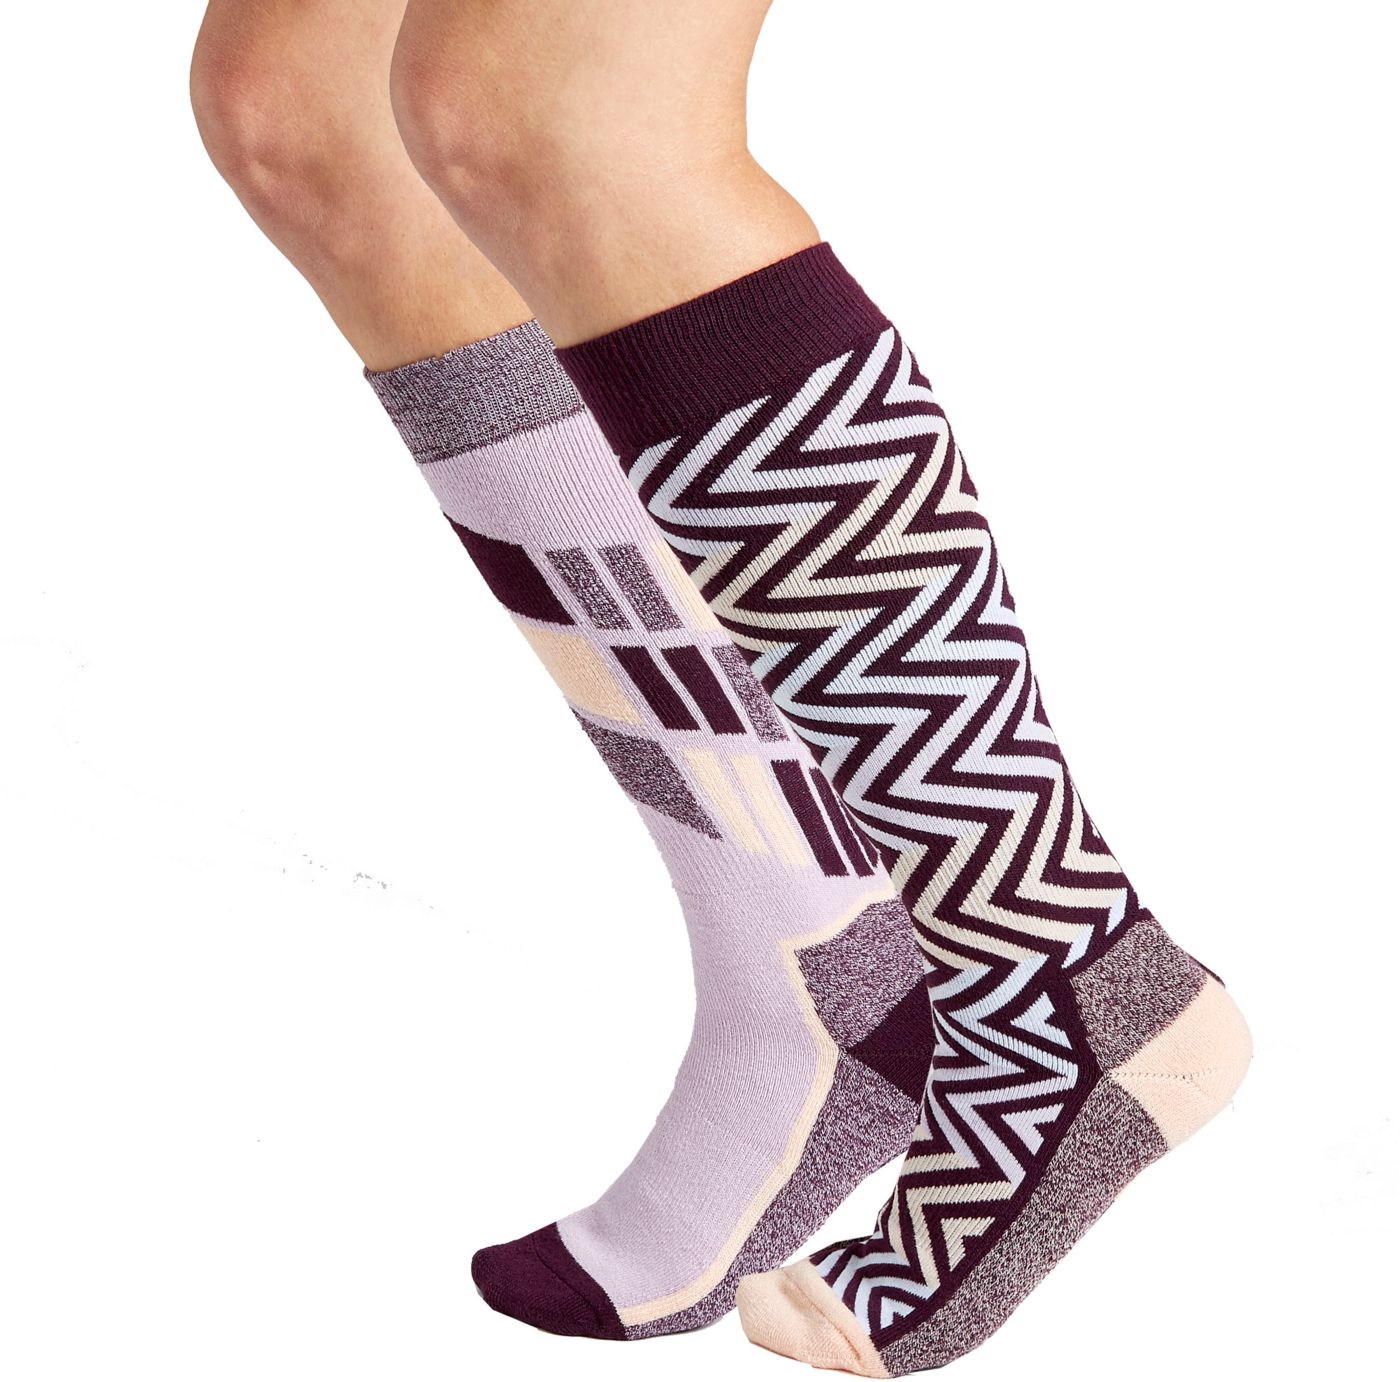 Alpine Design Women's Snow Sport Over-the-Calf Socks 2 Pack